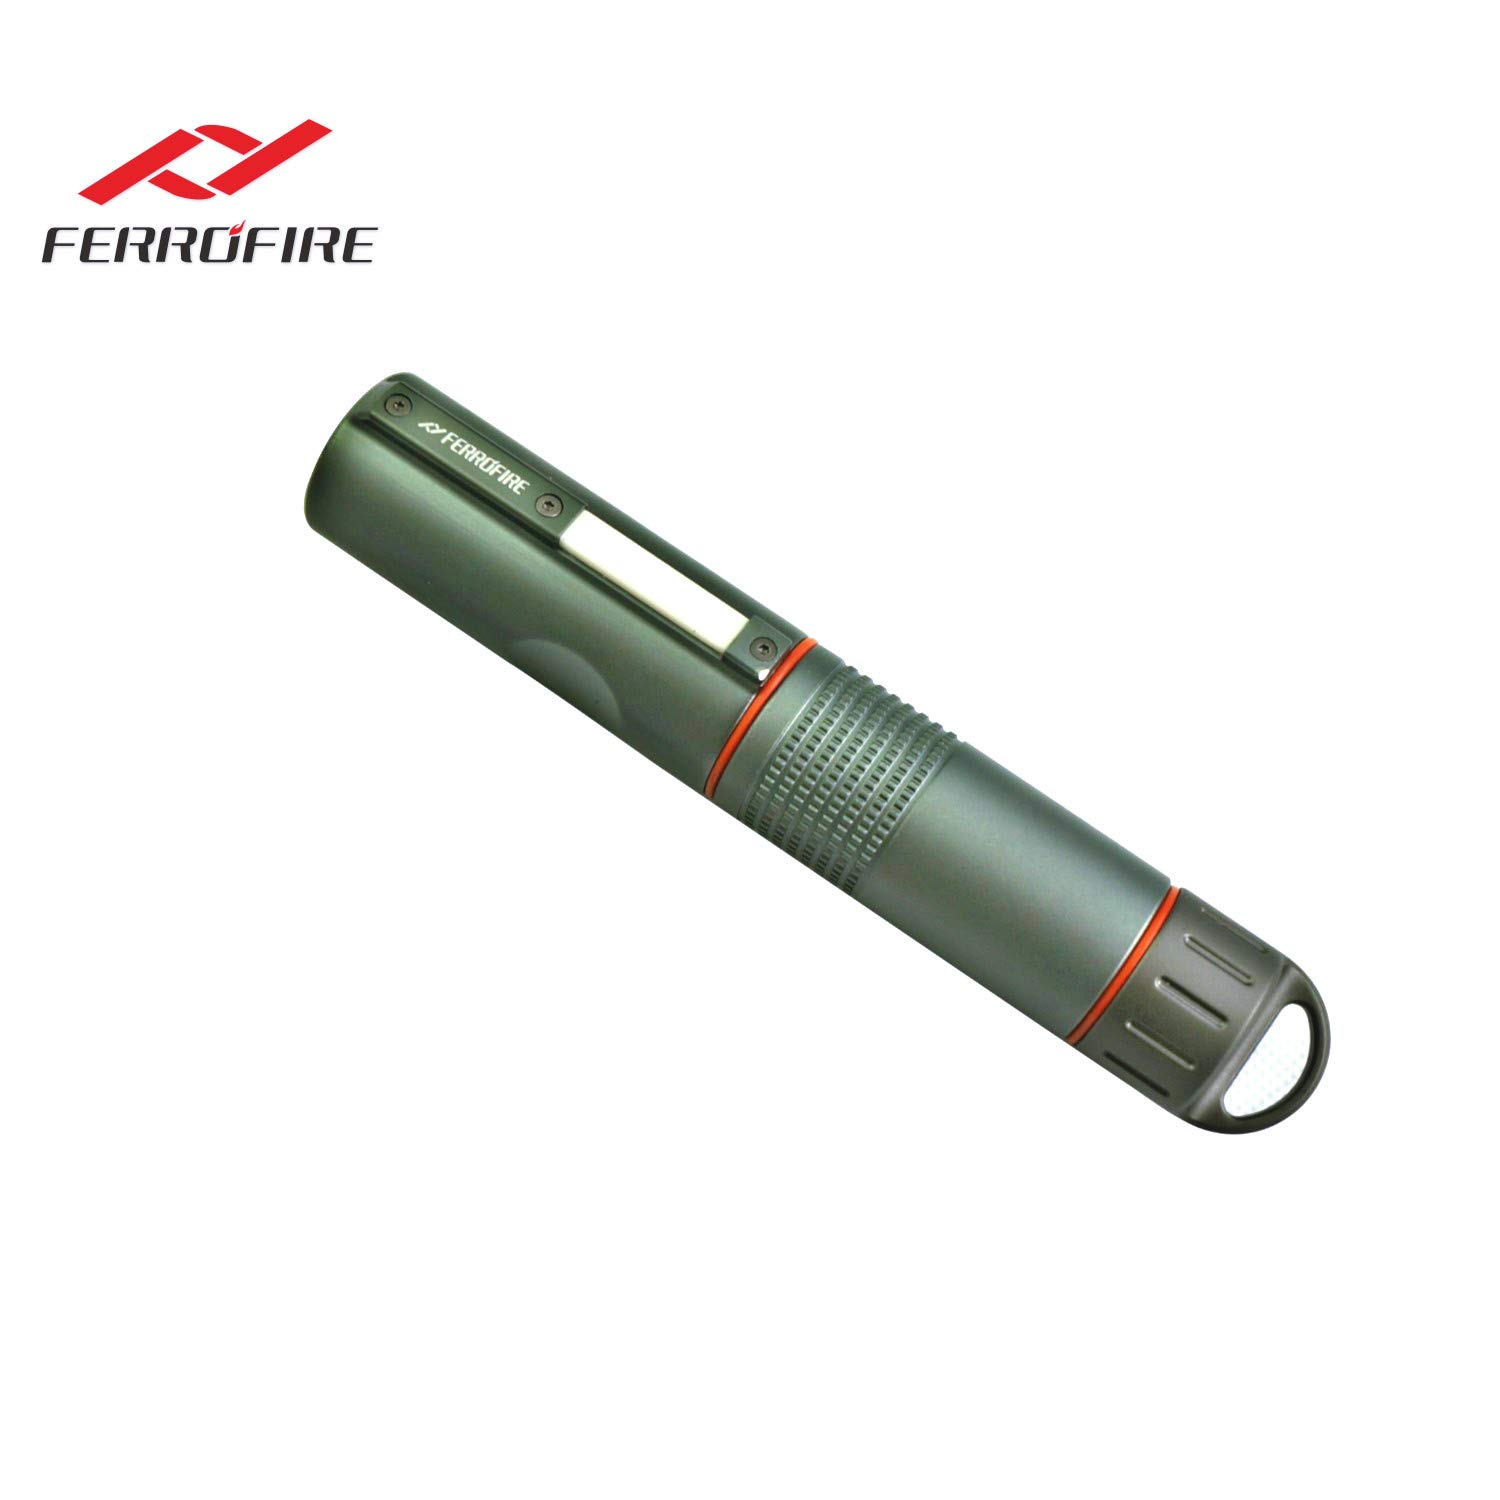 FERROFIRE Fire Starter XXL (S10E1), 2/5 inch Diameter Replaceable Ferro Rod, Compact Package. Truly for All Weathers and A Lifetime of Use with Waterproof Capsule, Built-in Striker, Compass by FERROFIRE